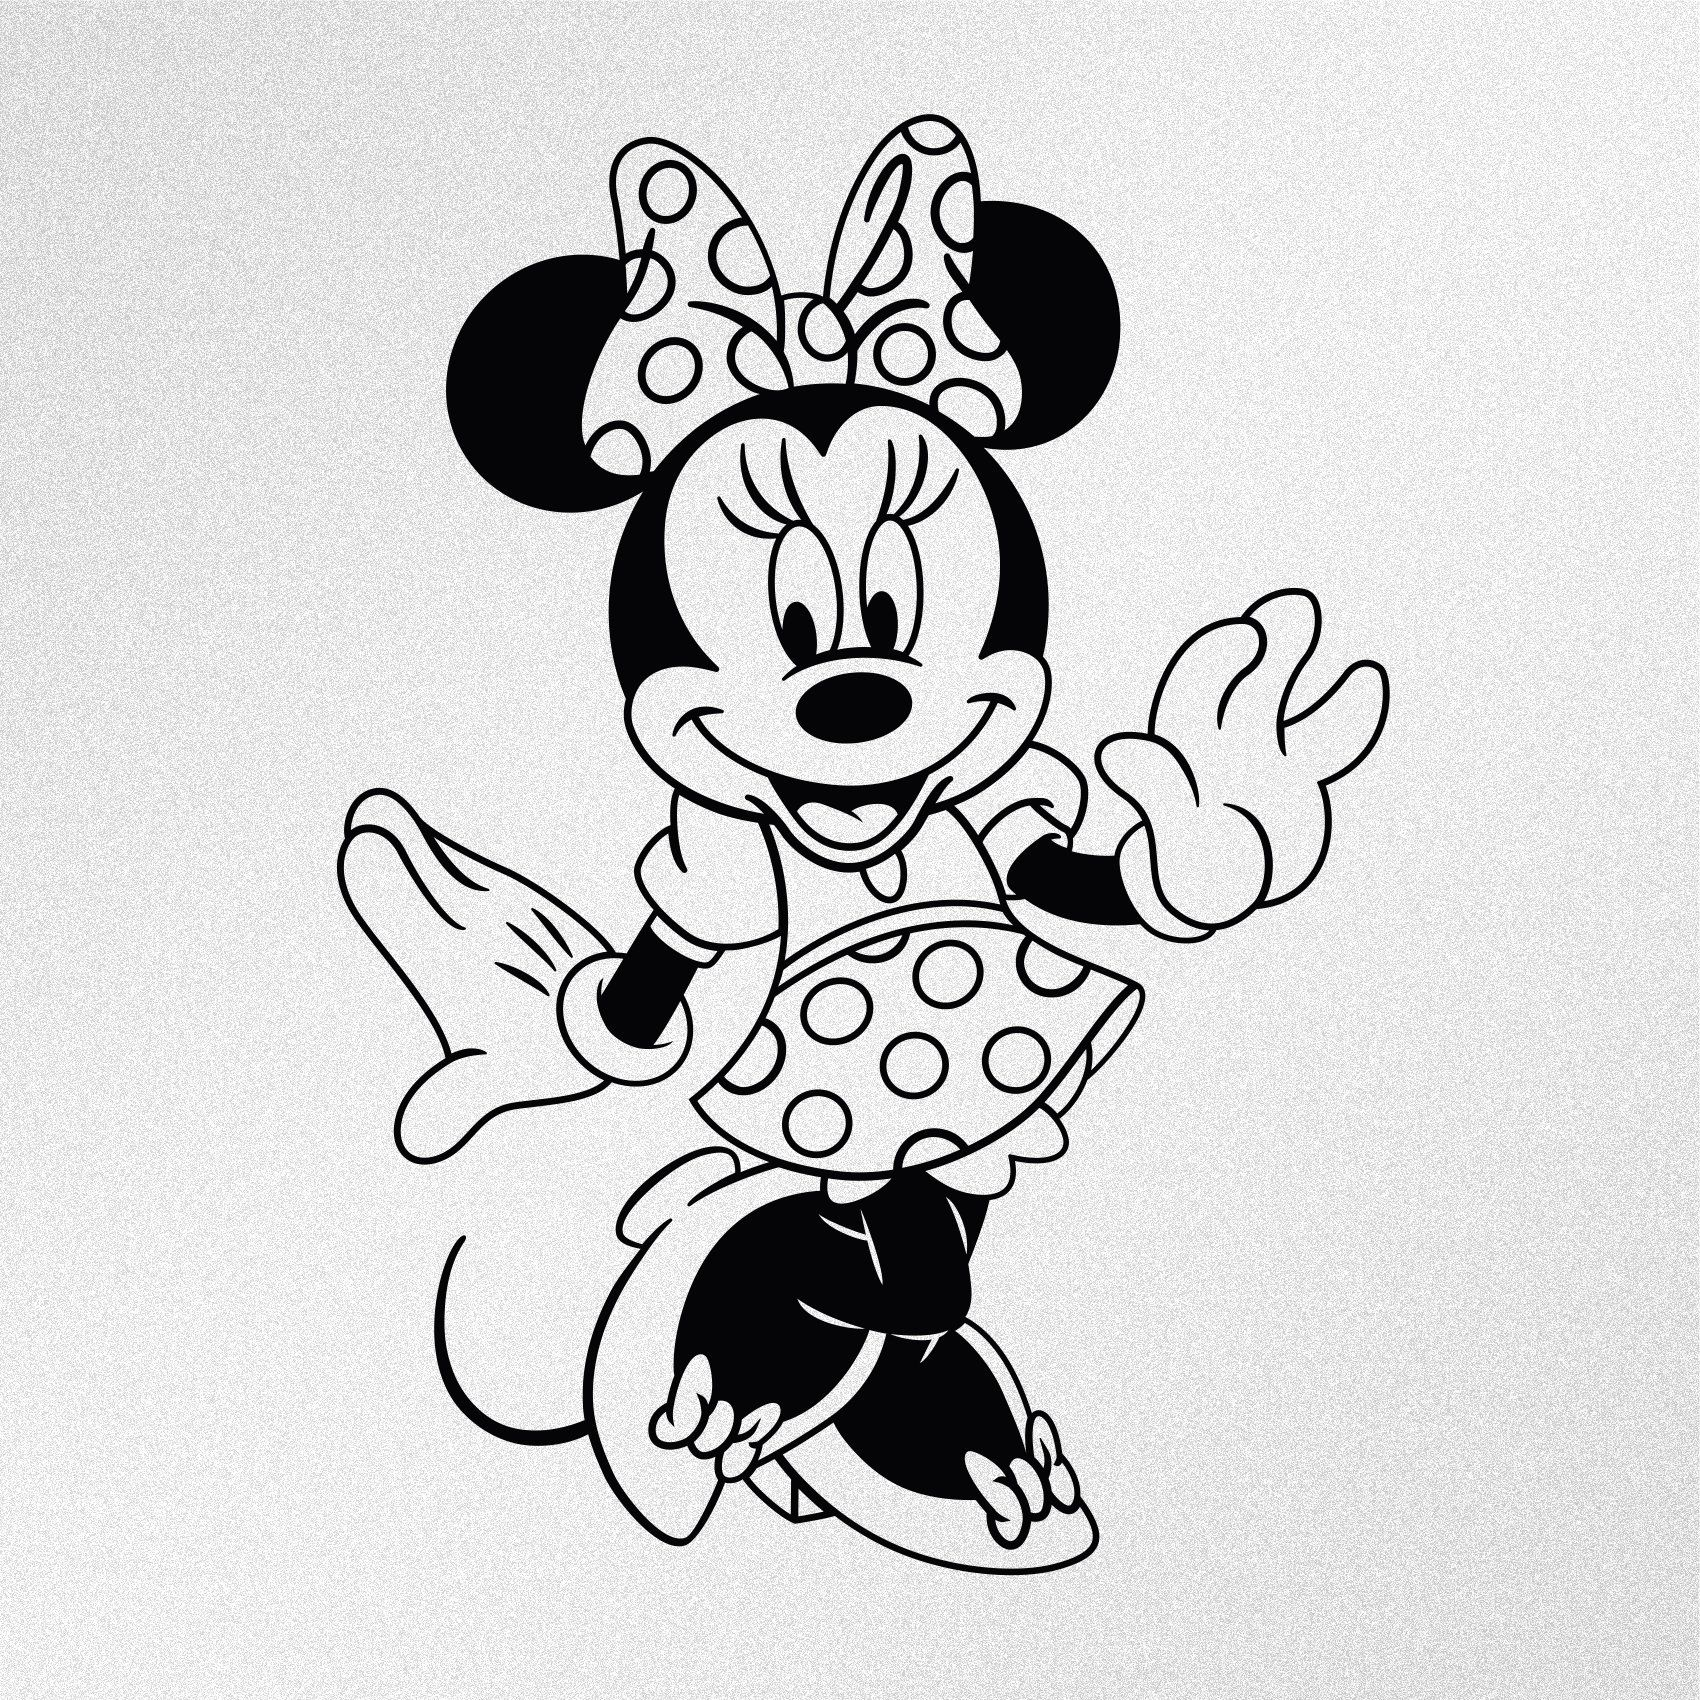 Minnie Mouse Dancing Vinyl Decal Sticker Free Disney Coloring Pages Mickey Mouse Coloring Pages Minnie Mouse Coloring Pages